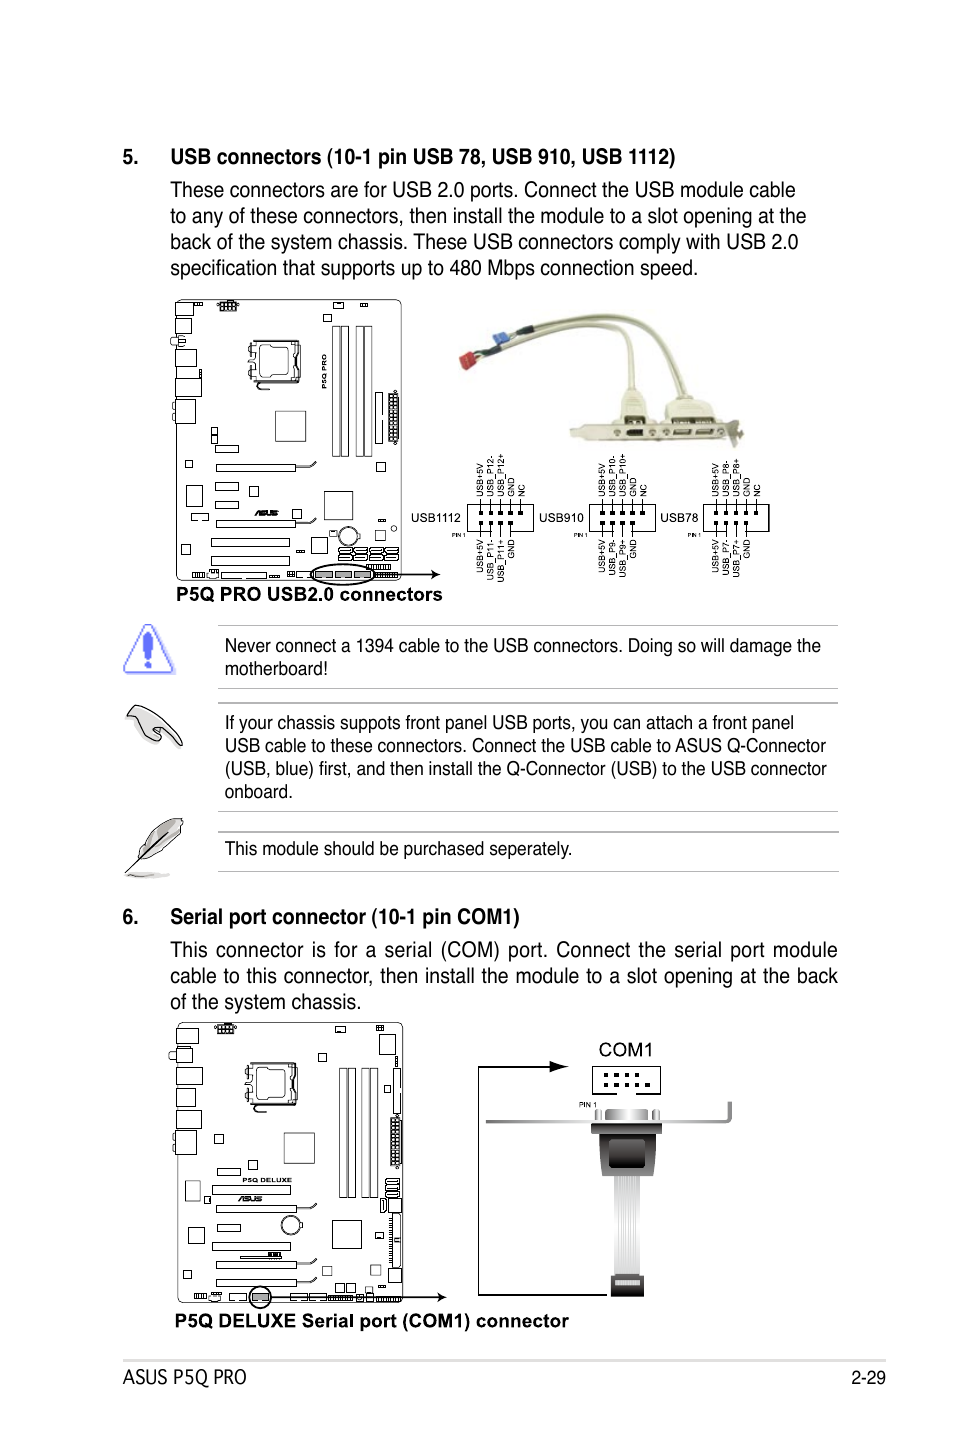 Asus P5q Pro Installation Manual Photos Collections Usb Cable Wiring Diagram User Page 55 180